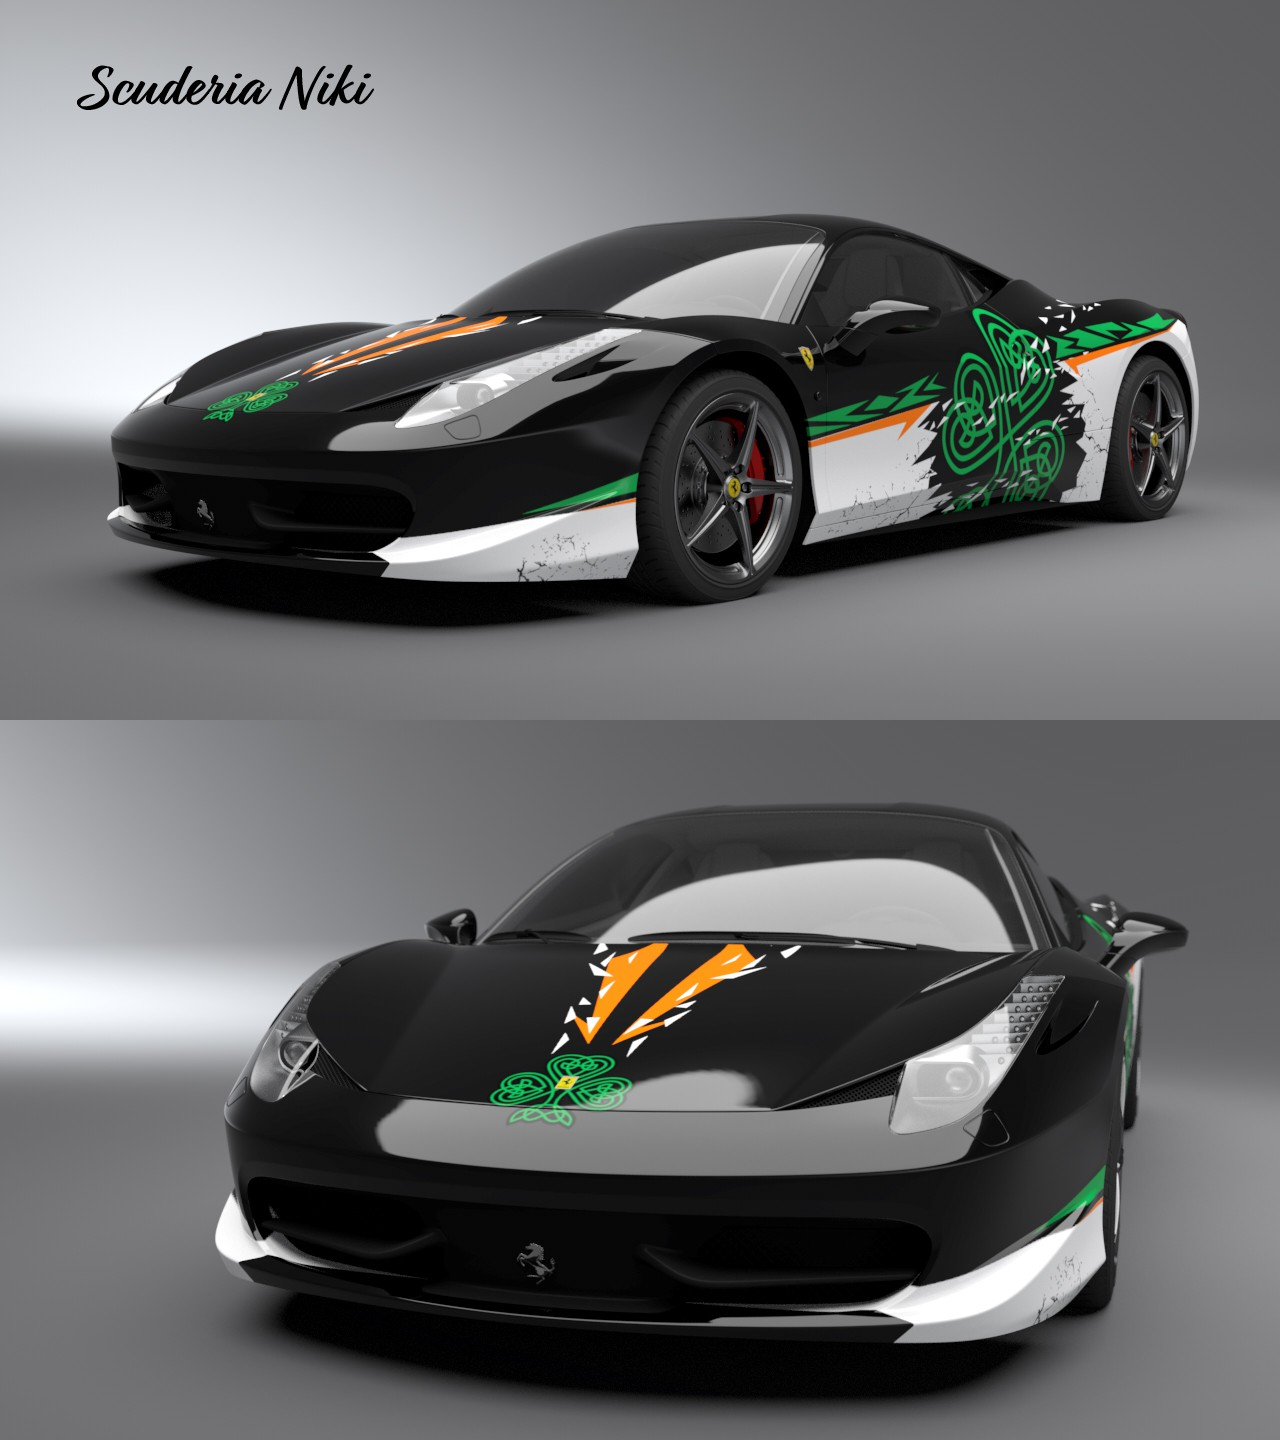 Design the most eye-catching Ferrari 458 Challenge race car for the 2018 season.